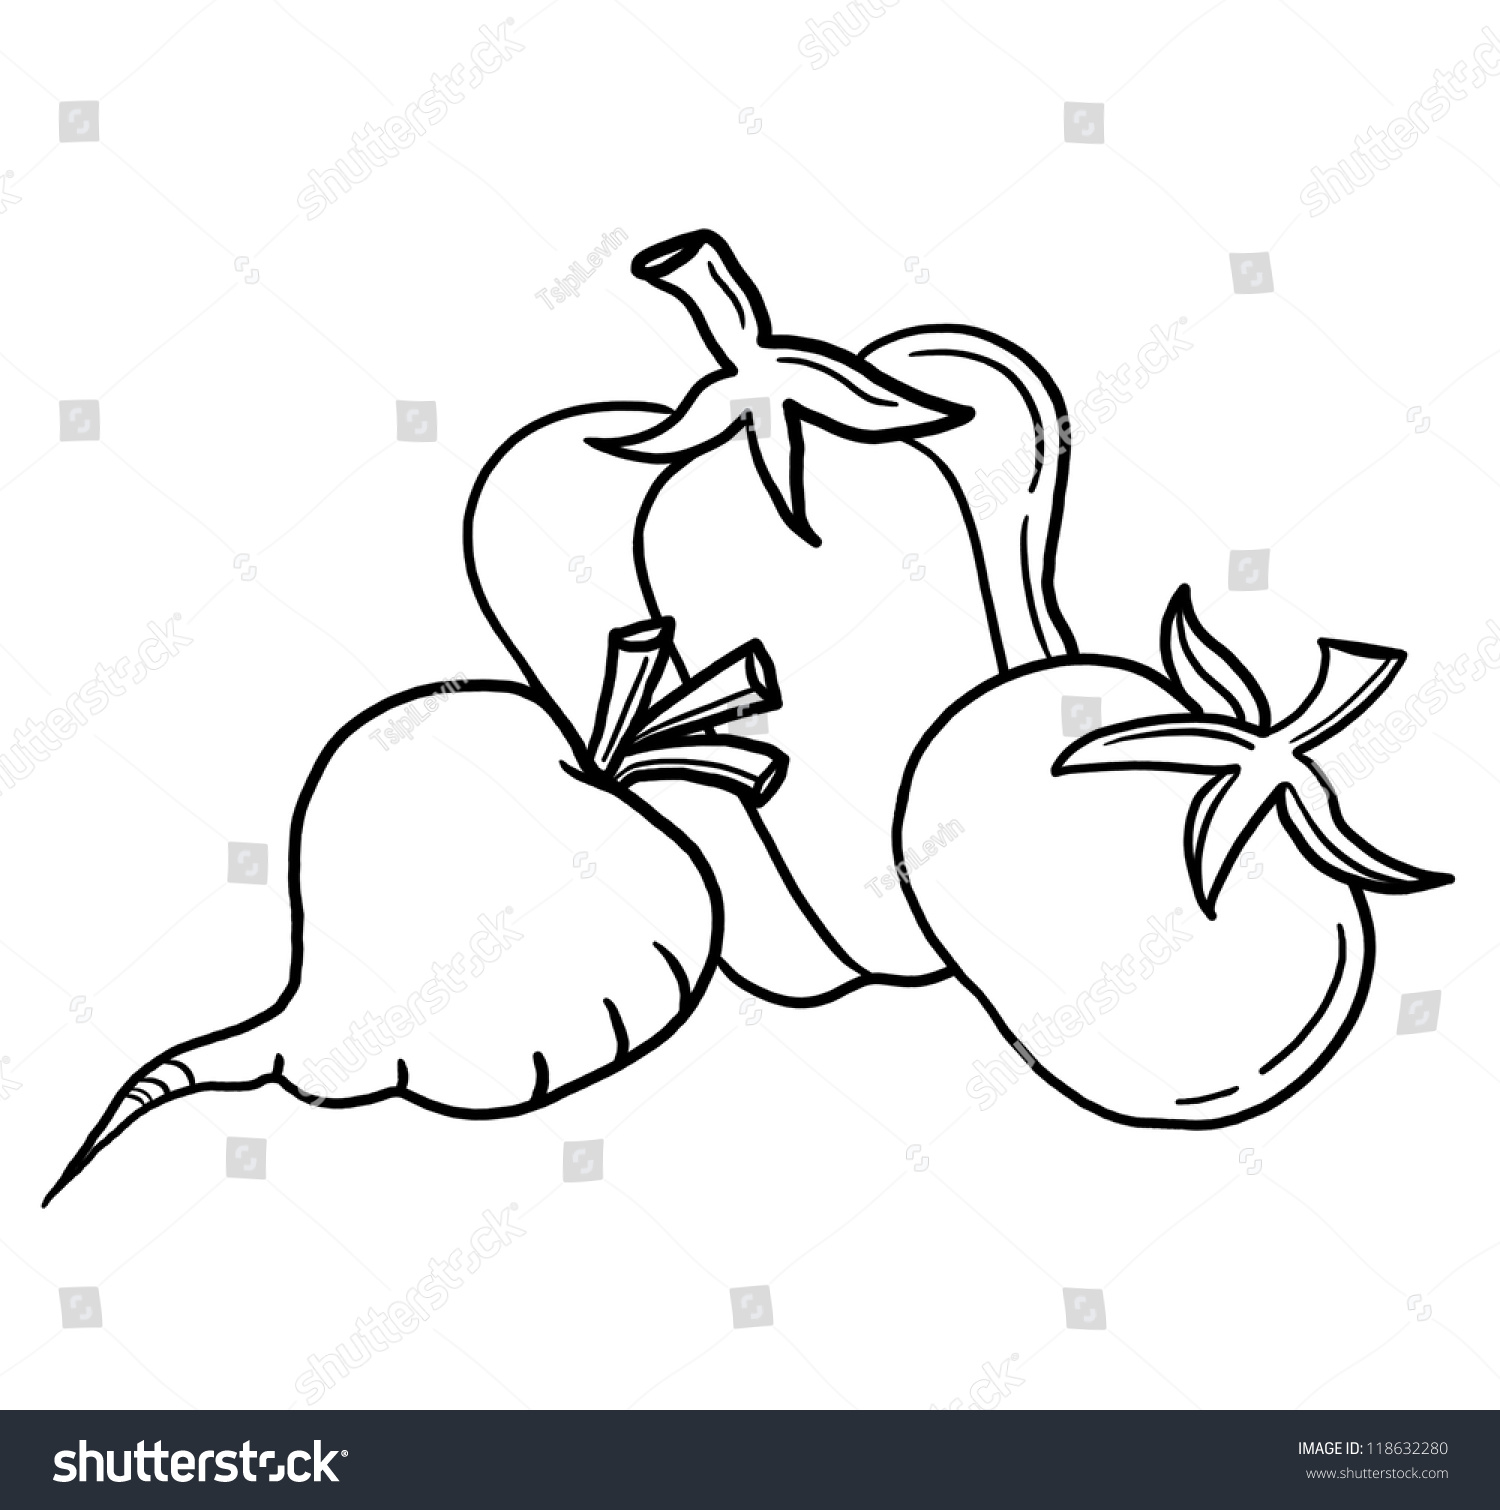 Line Drawing Zucchini : Vegetables outline illustration vegetable collection